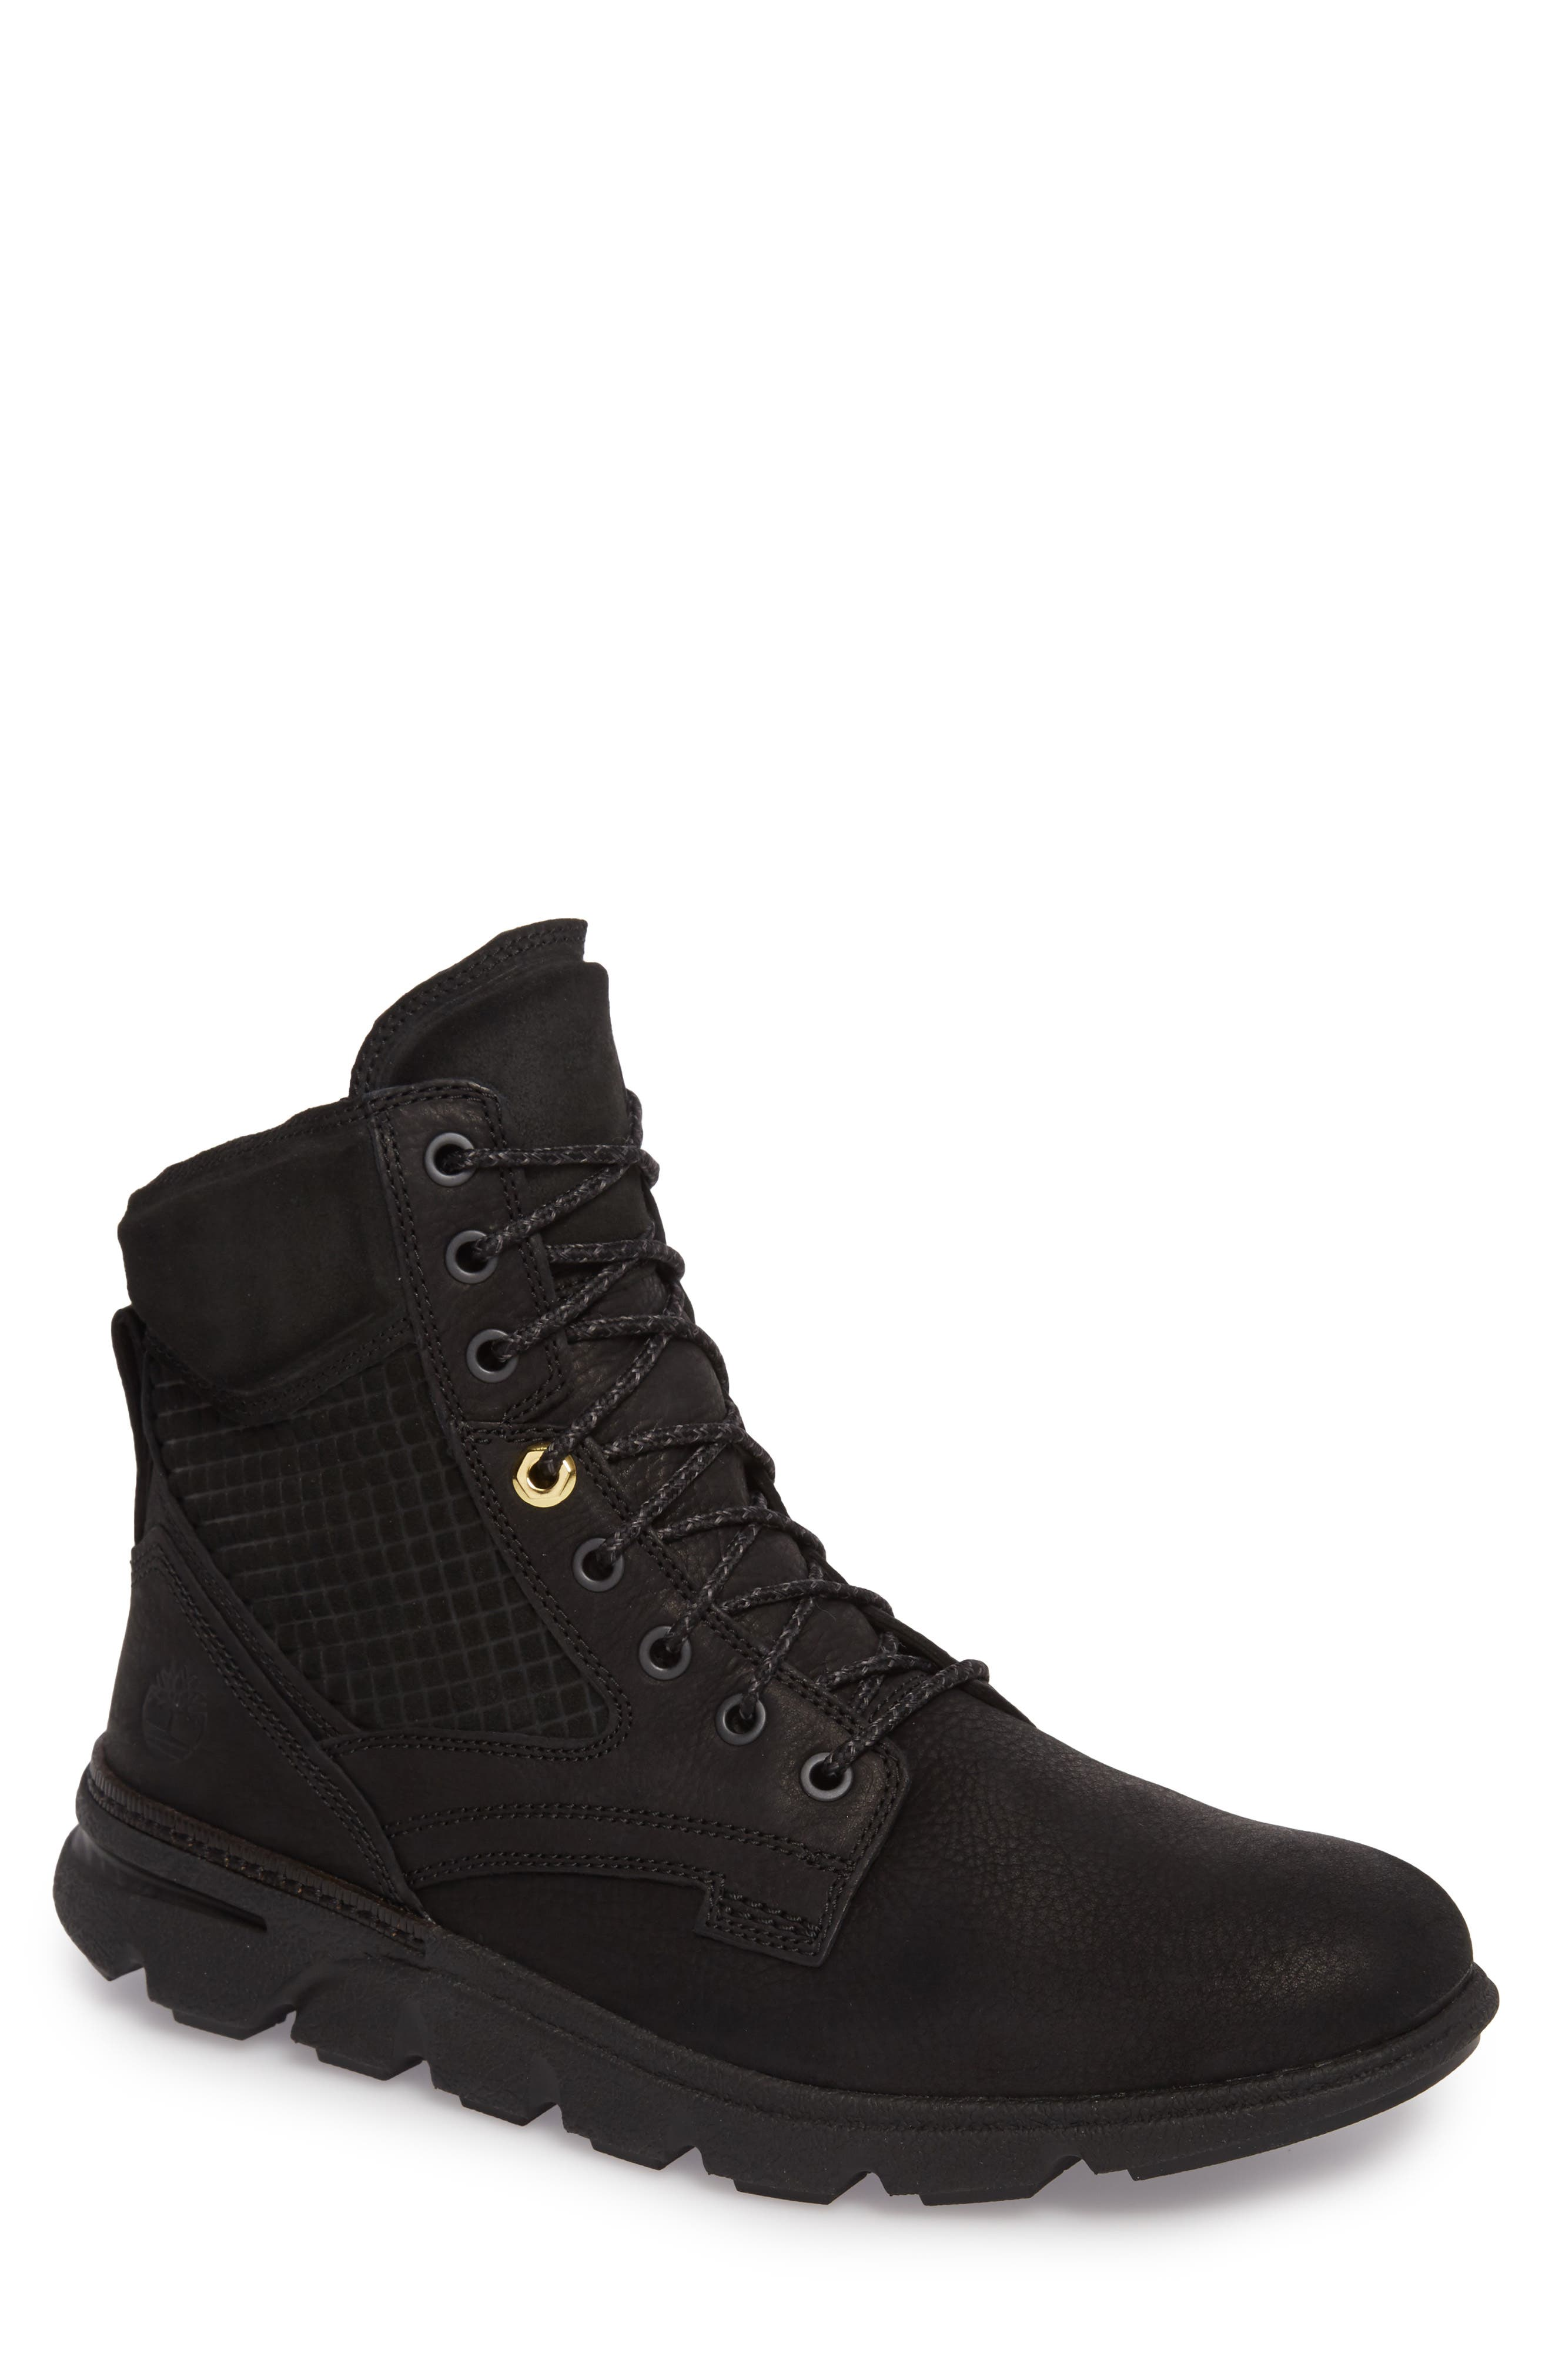 Eagle Lace-Up Boot,                         Main,                         color, Jet Black Leather